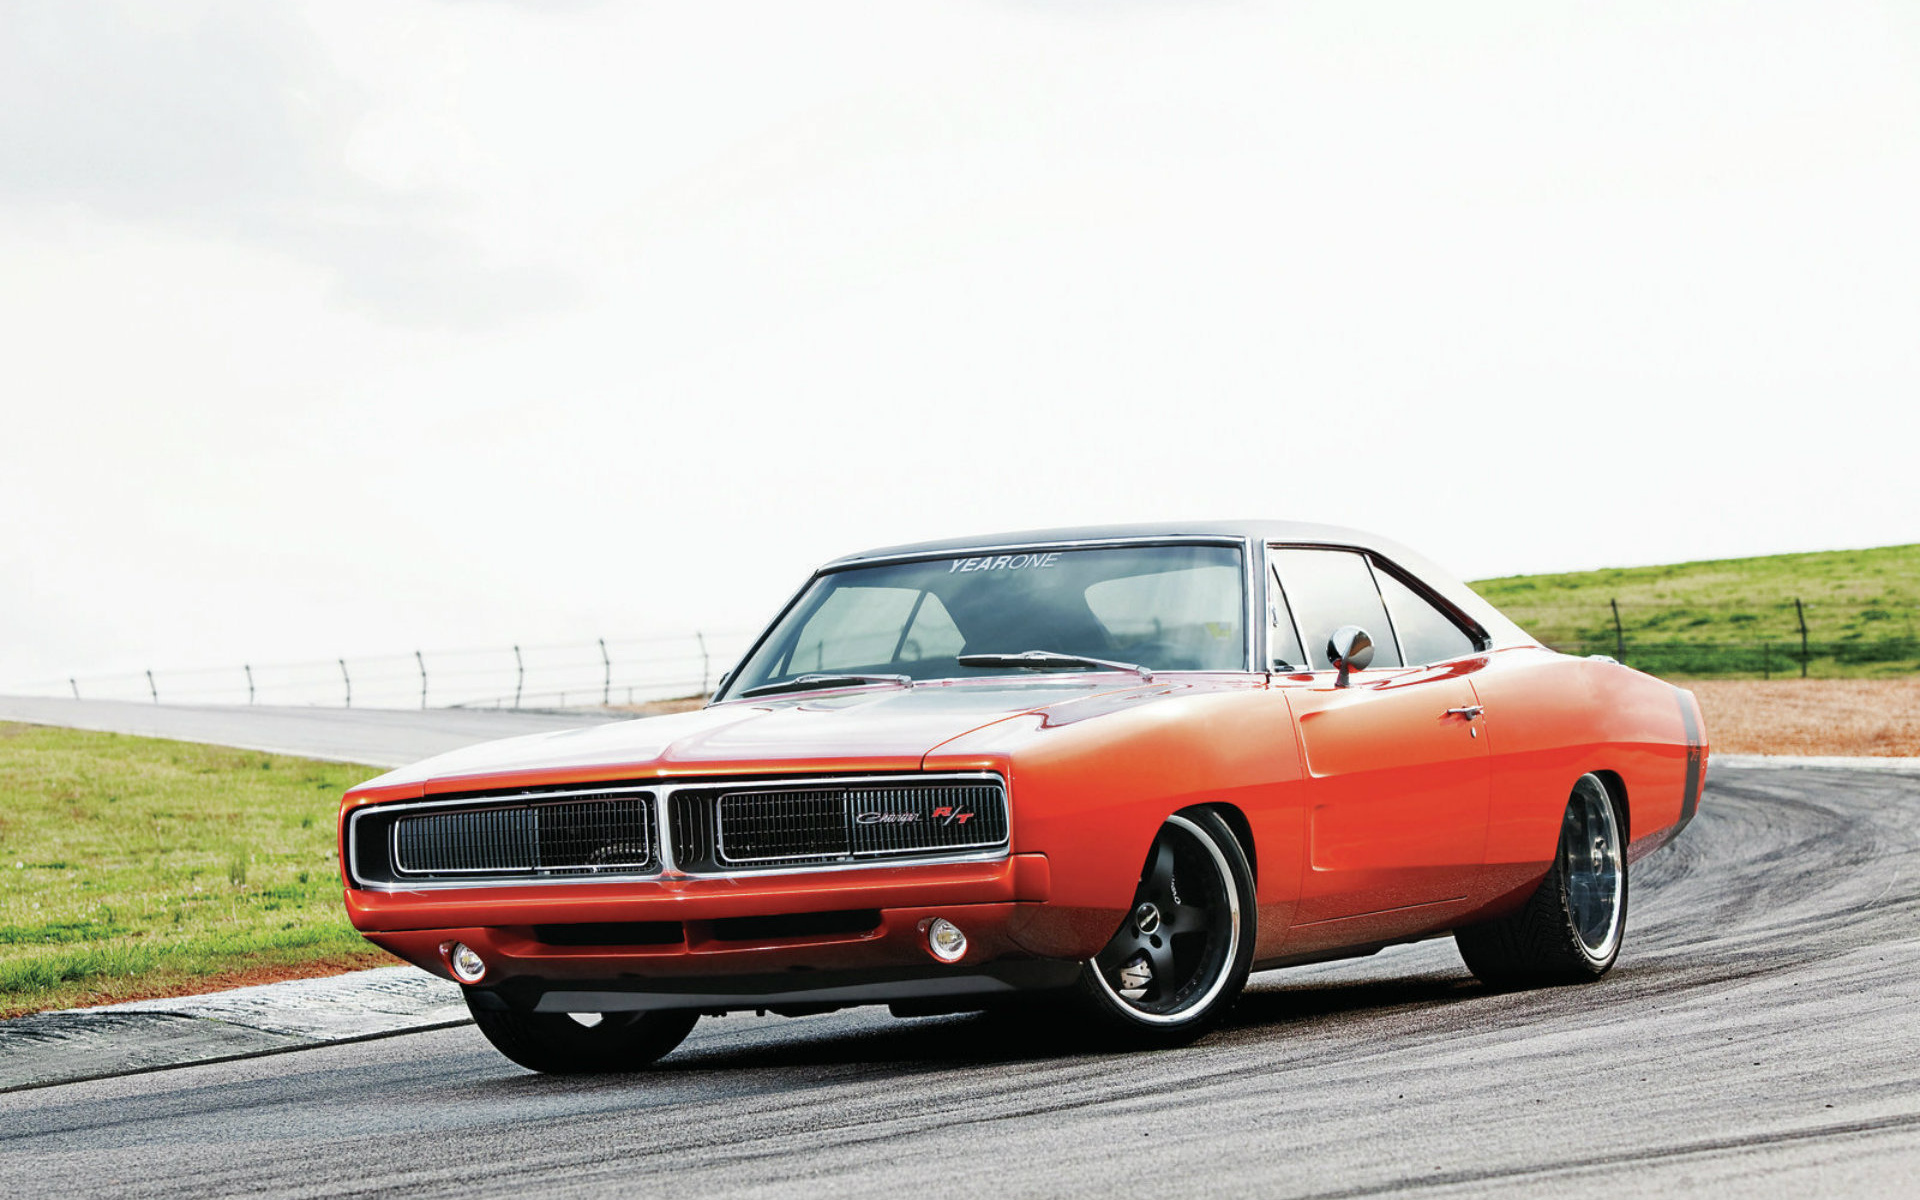 Mopar 1969 Dodge charger classic muscle hot rod rods wallpaper ...